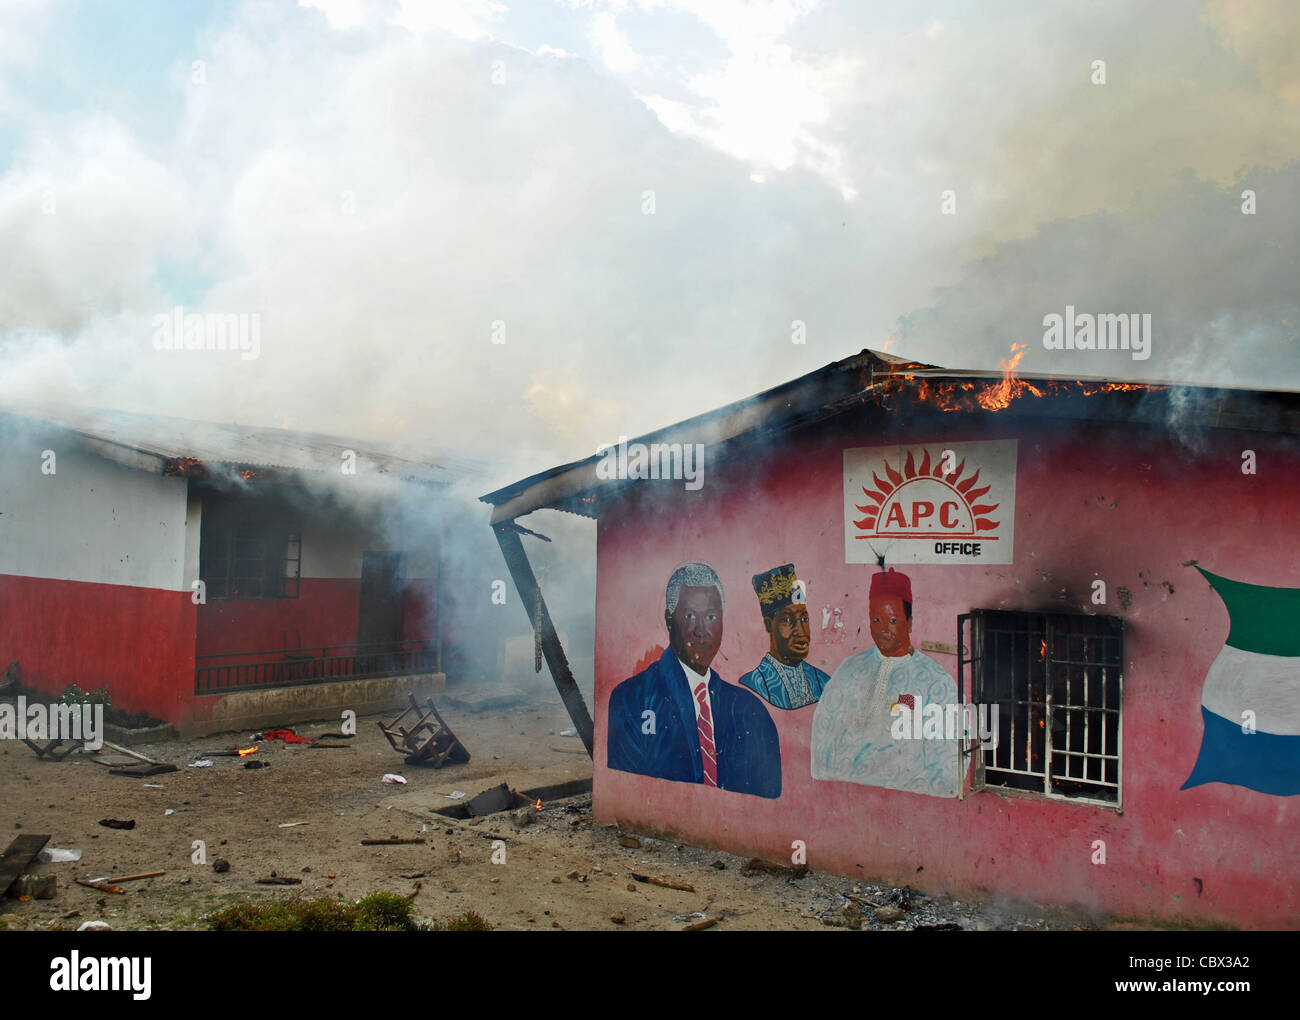 Burning offices of Pres Koroma's APC party, burnt by SLPP supporters at a rally ahead of 2012 elections in Sierra - Stock Image